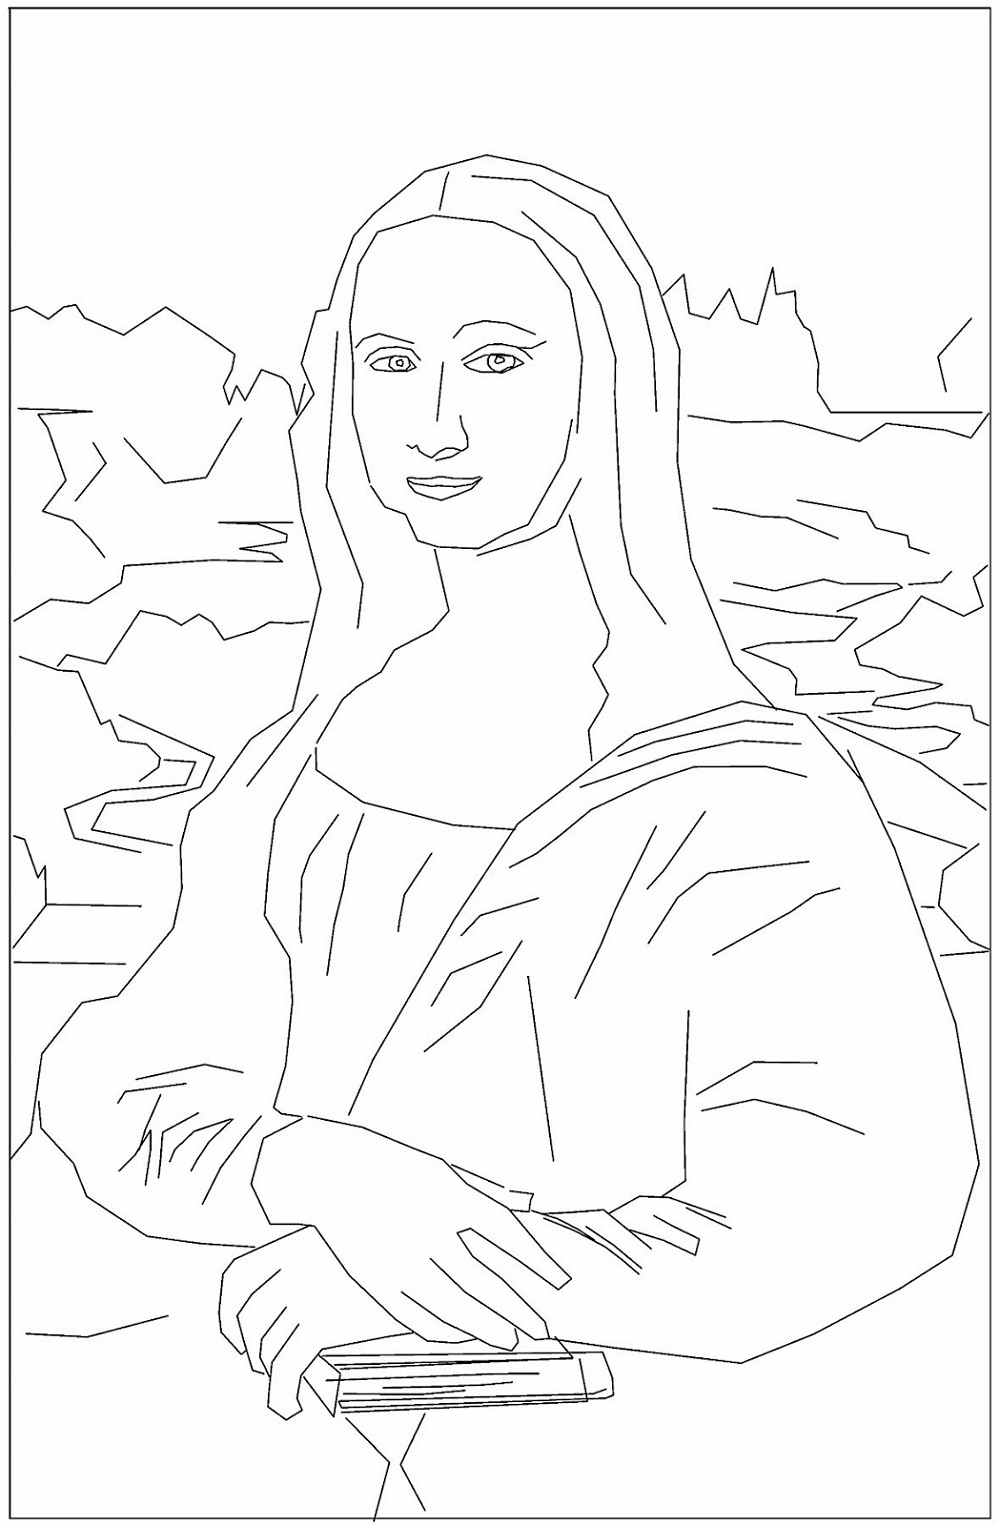 Mona Lisa Coloring Page ArtMona Lisa Coloring Page Art